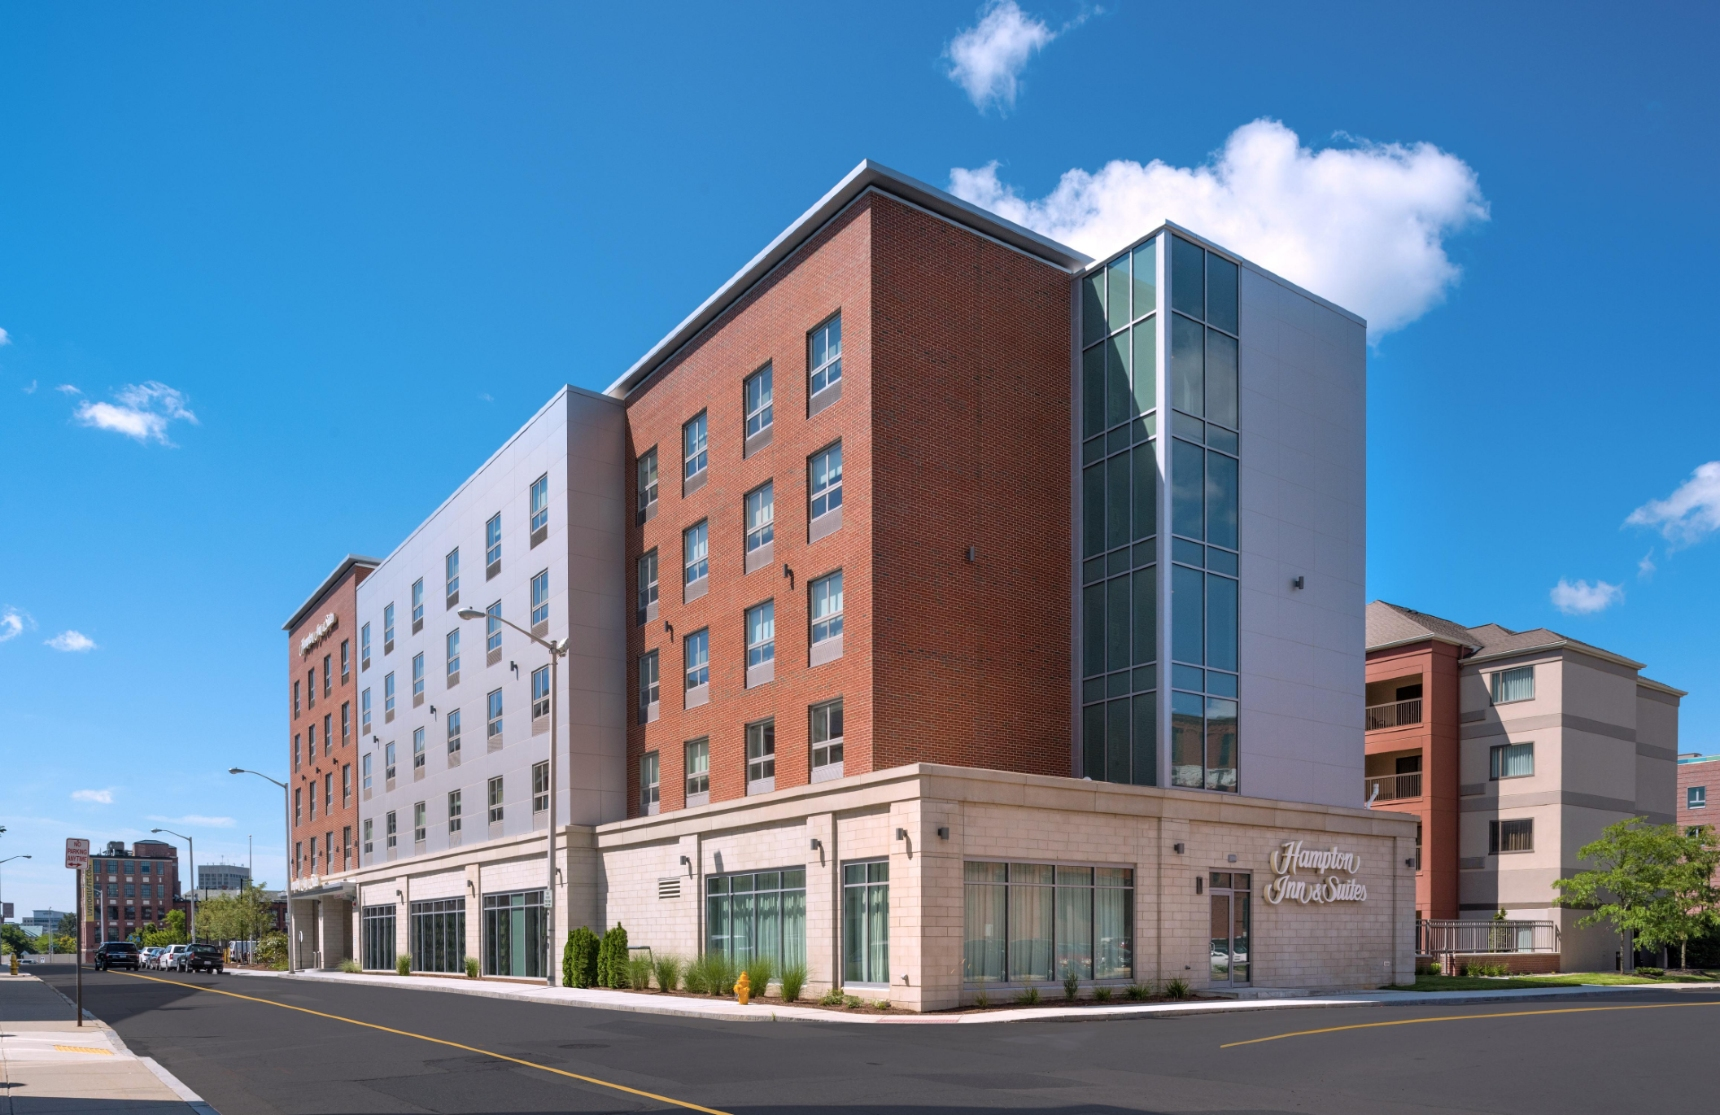 Exterior image of the Hampton Inn